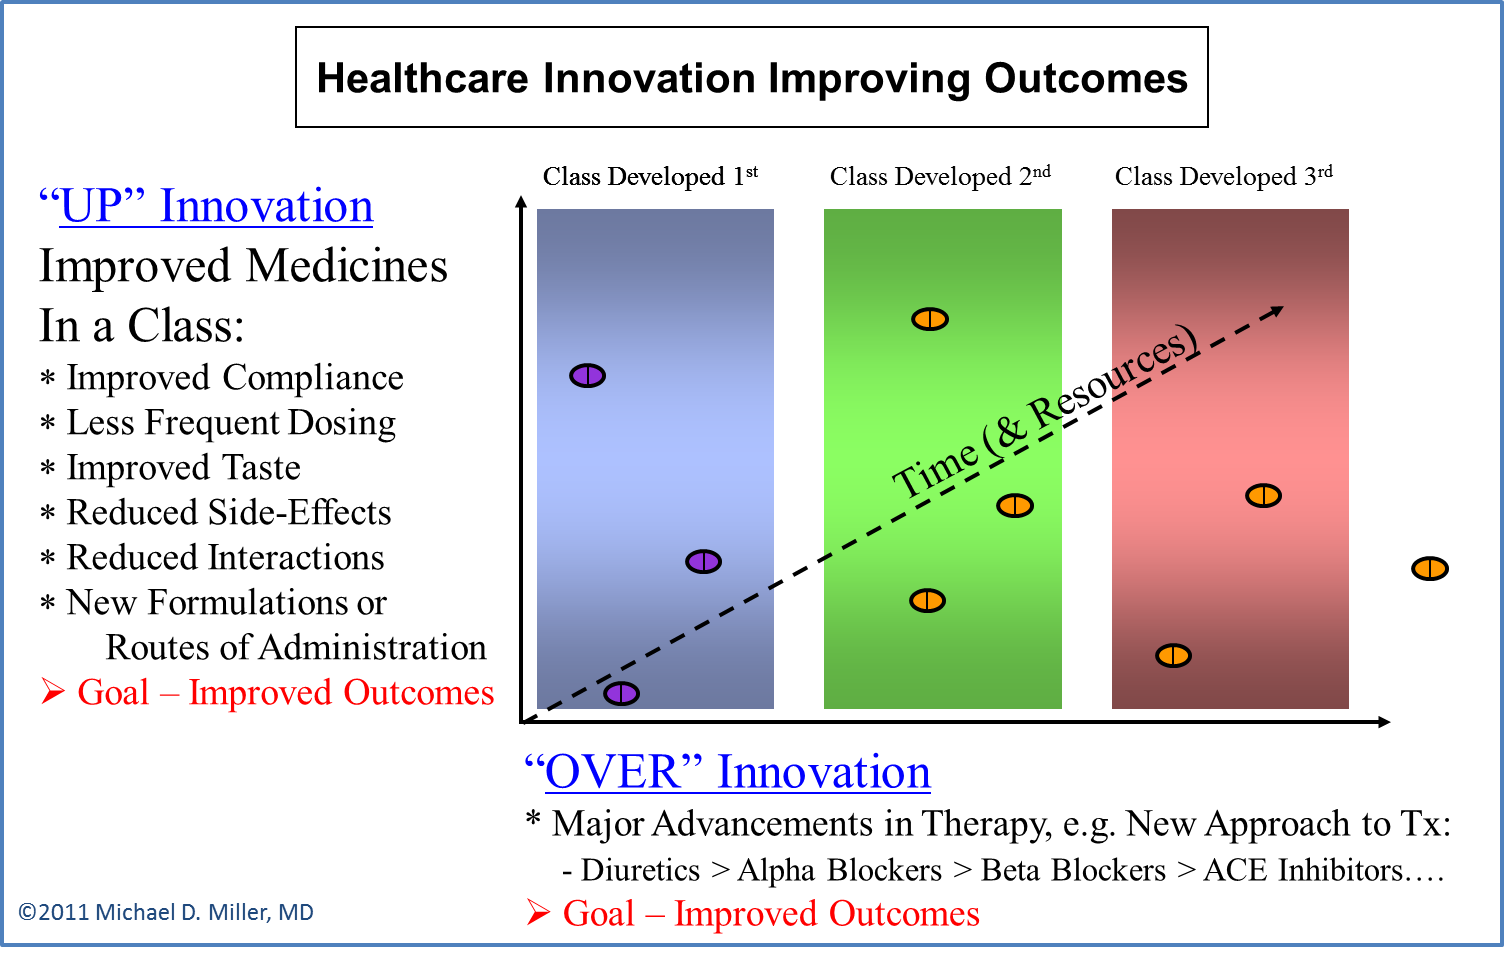 Healthcare Innovation - OVER Innovation - Y Axis - MDMiller 2011